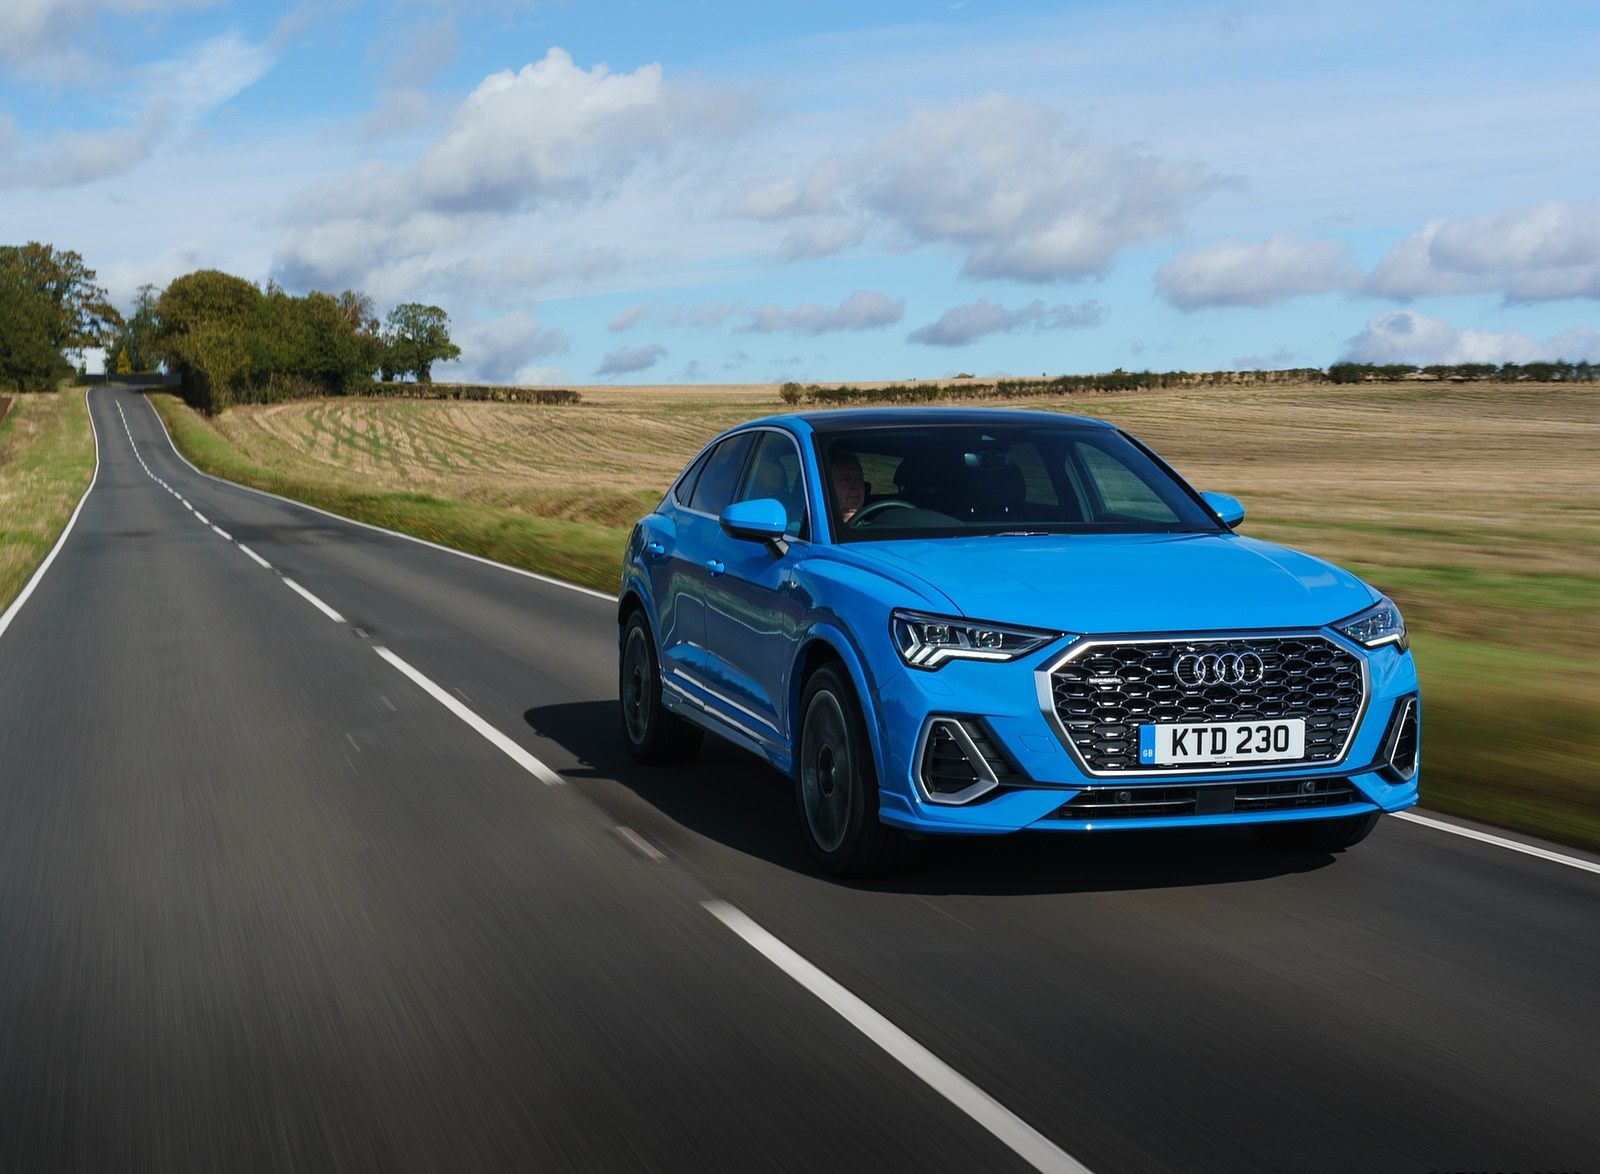 2020 Audi Q3 Sportback 45 TFSI quattro (UK-Spec) Front Three-Quarter Wallpapers (2)